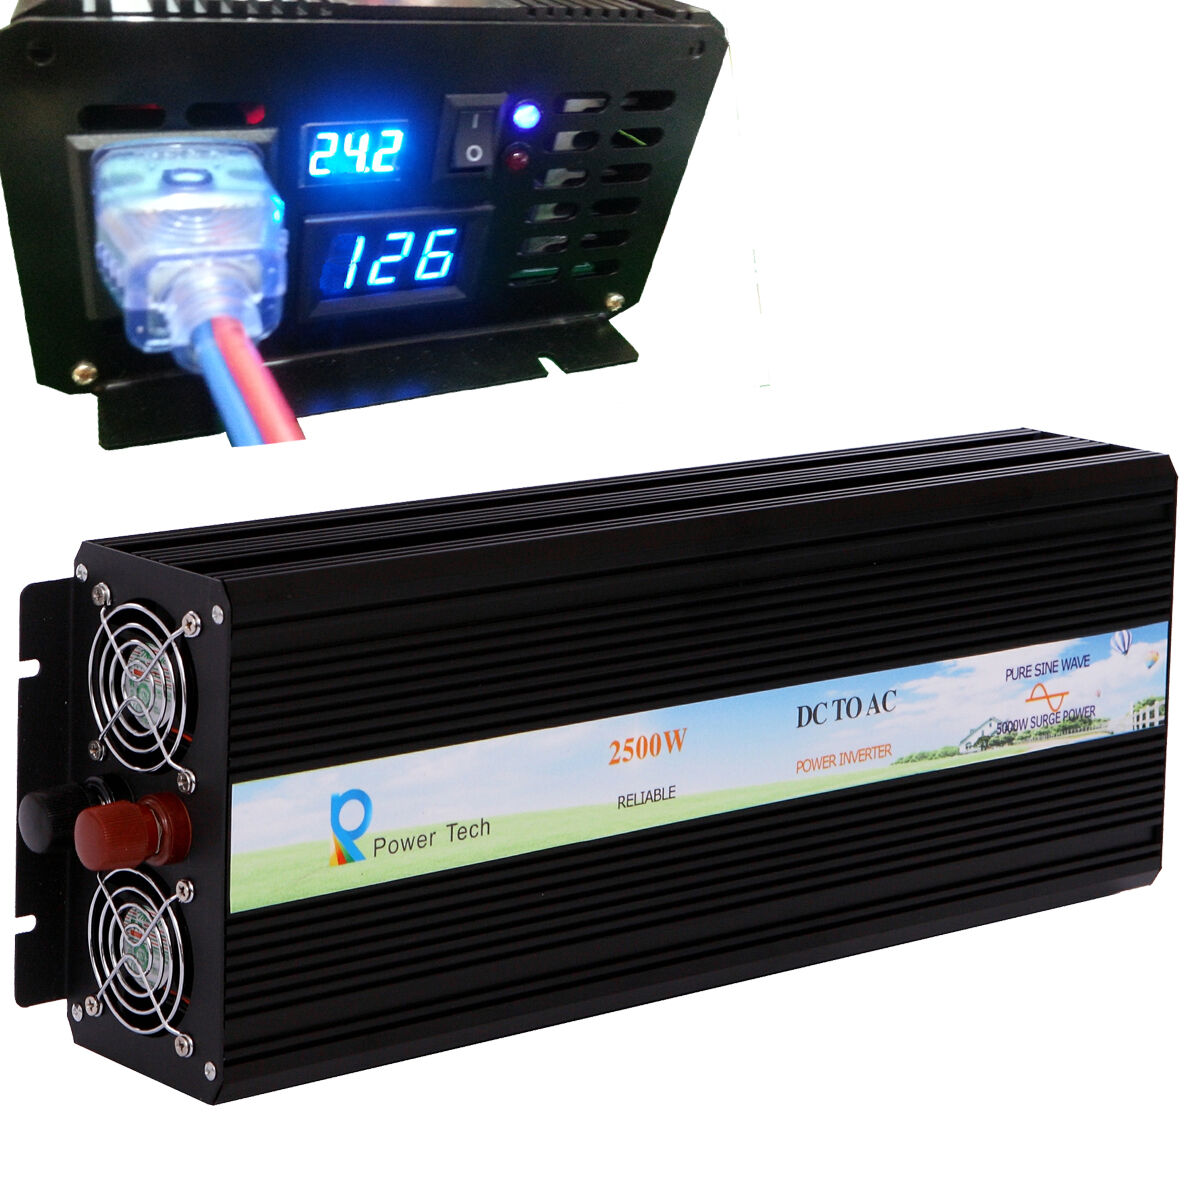 2500w Power Inverter 24v To 120v Pure Sine Wave Off Grid 300 Watts Pwm Controlled Circuit With Output Led Display 1 Of 9free Shipping See More